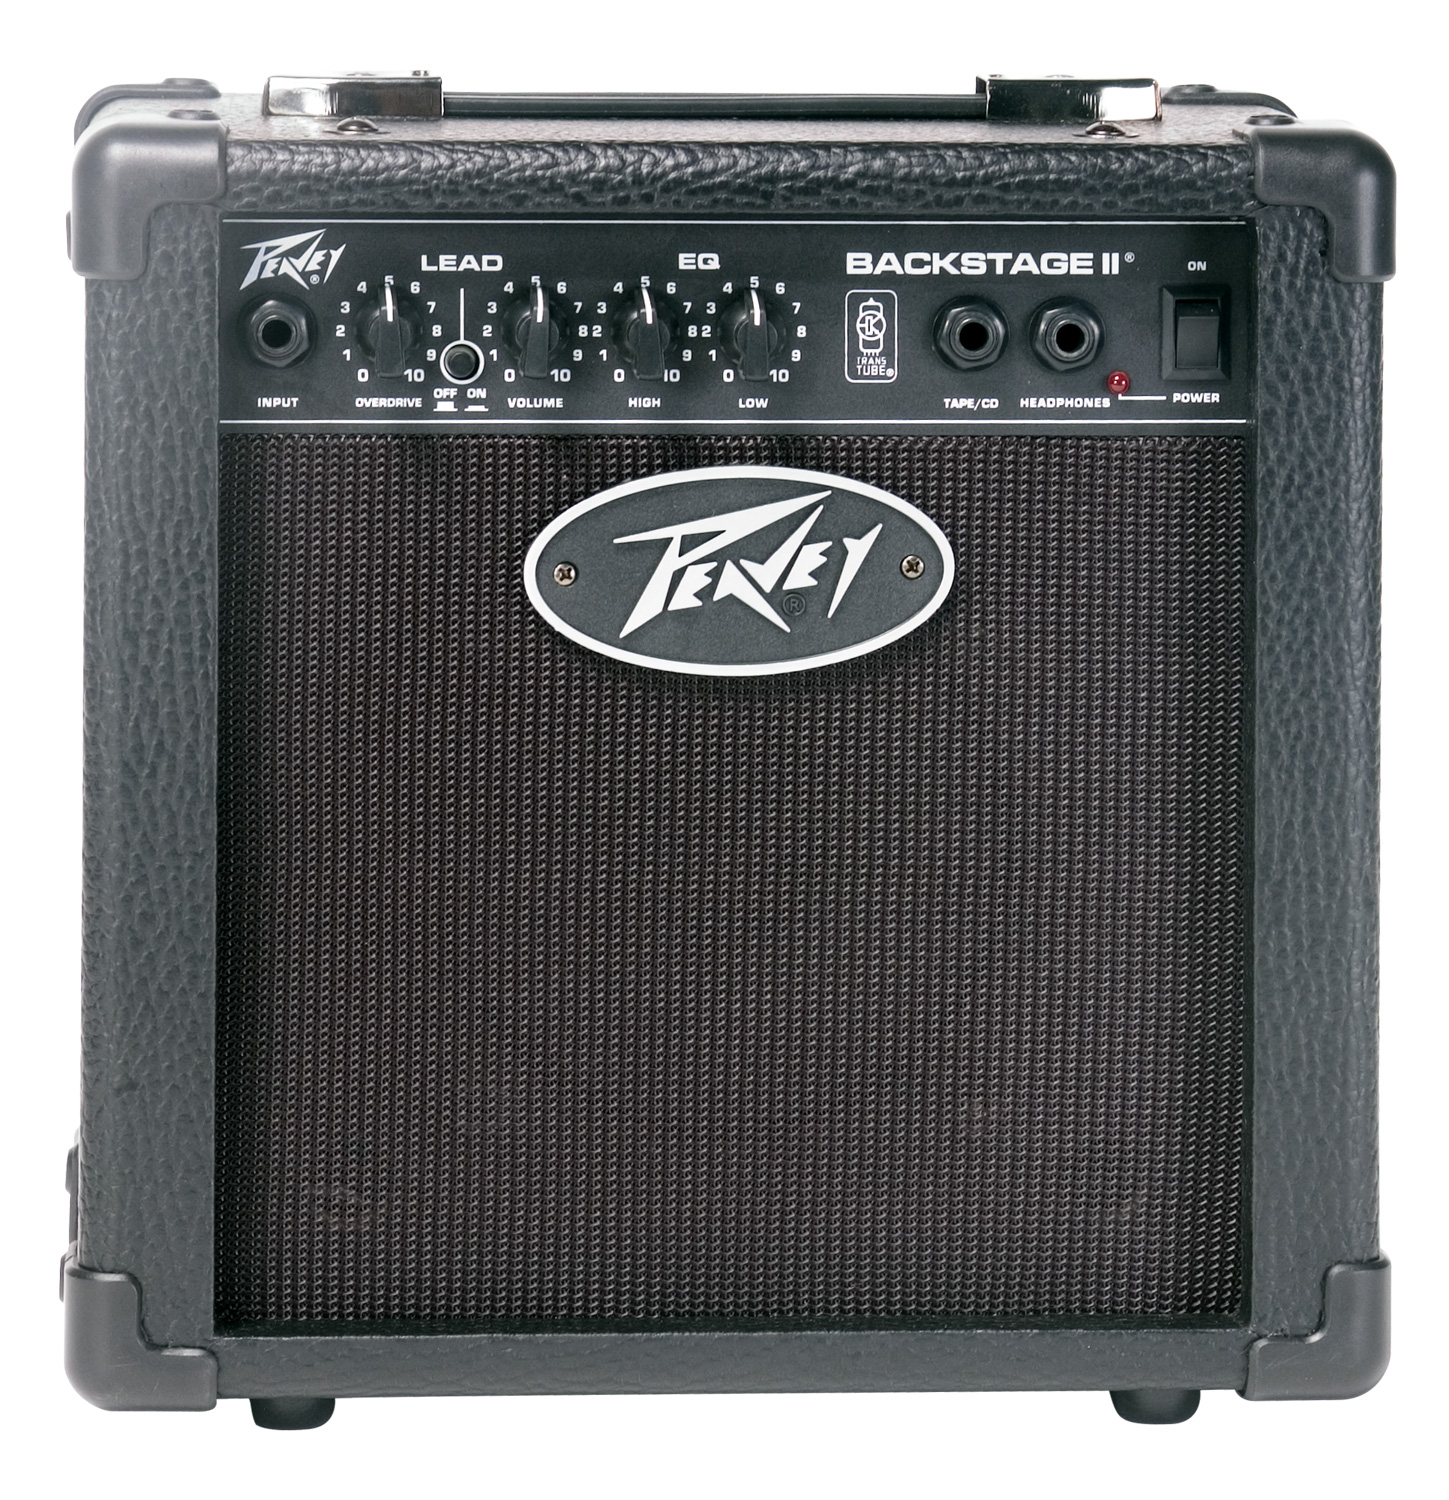 peavey backstage ii electric guitar amplifier 6 speaker combo 10 watt amp pev13 590630 rs. Black Bedroom Furniture Sets. Home Design Ideas